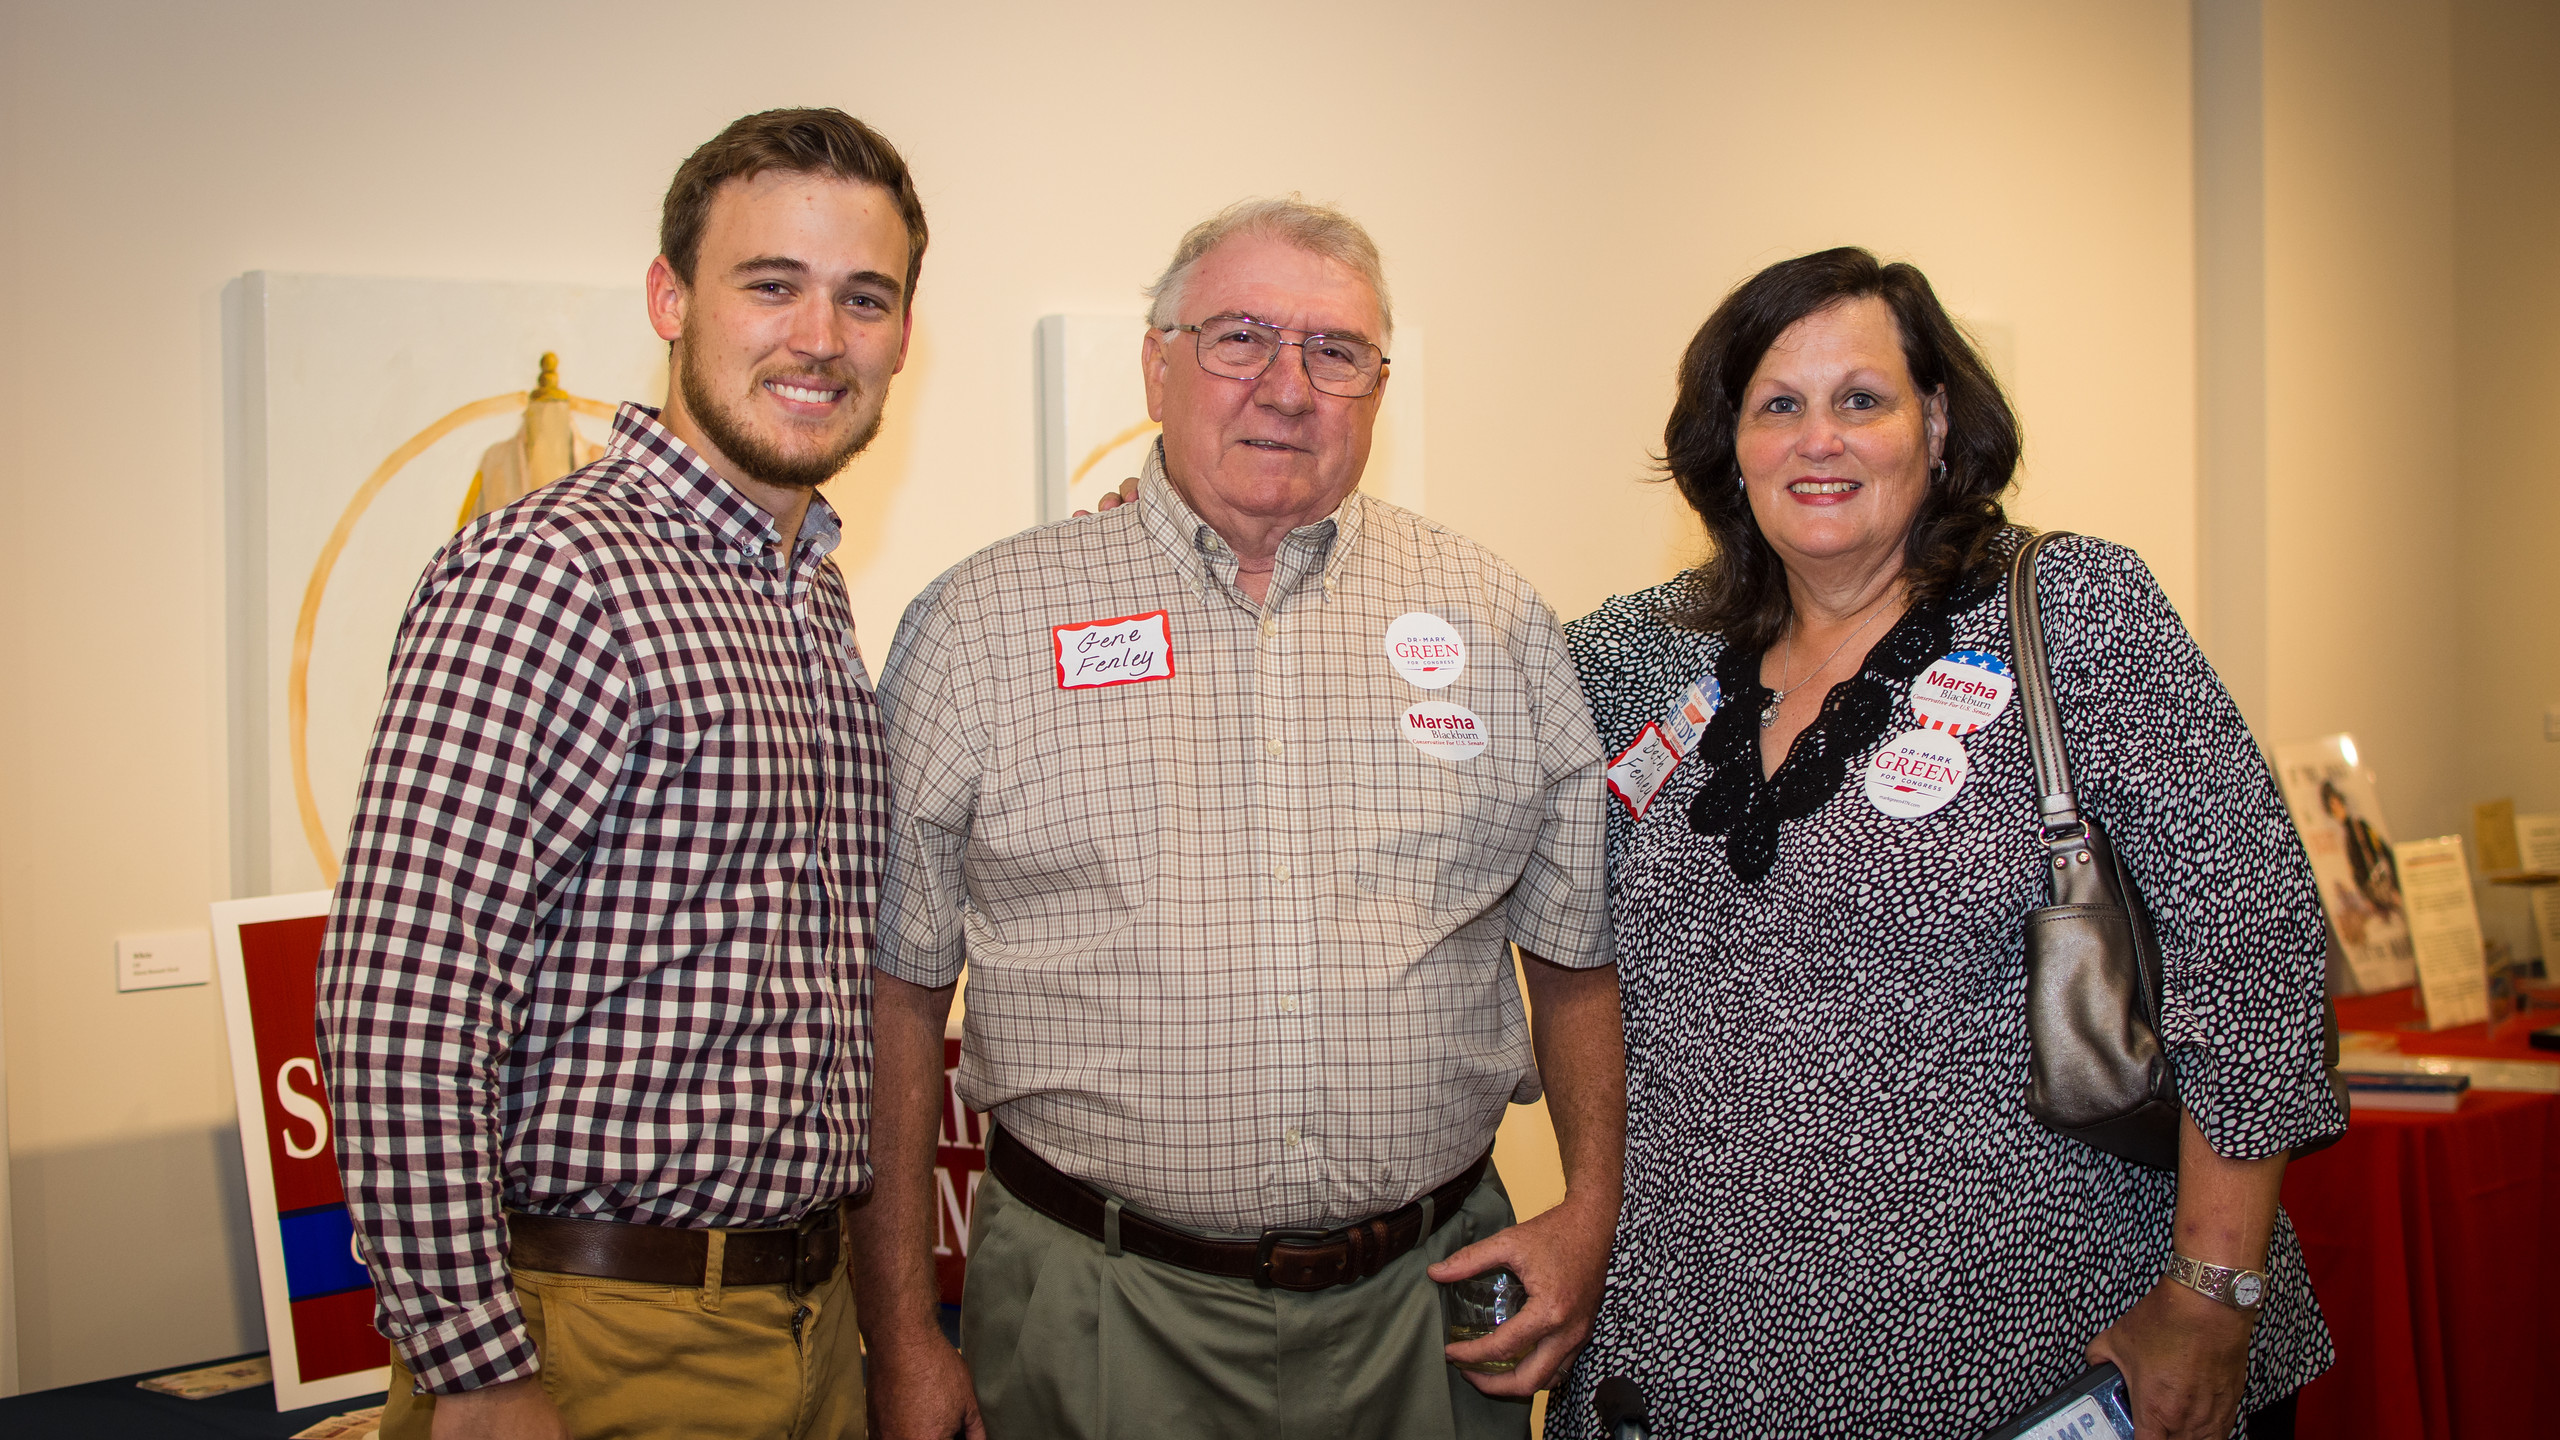 Alex Vanderford and Gene and Beth Fenley